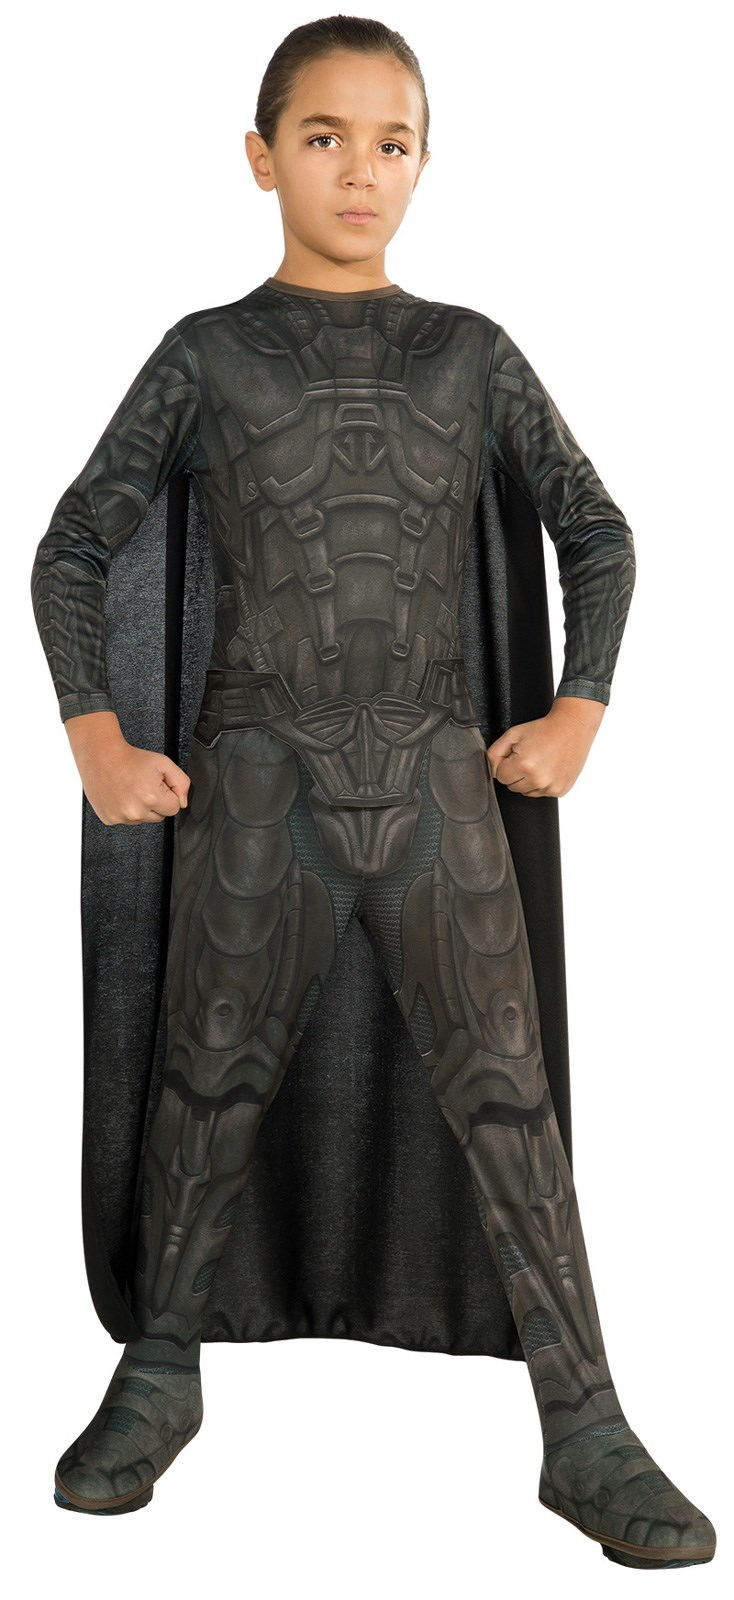 Superman Man of Steel General Zod Child Costume Small (4-6)